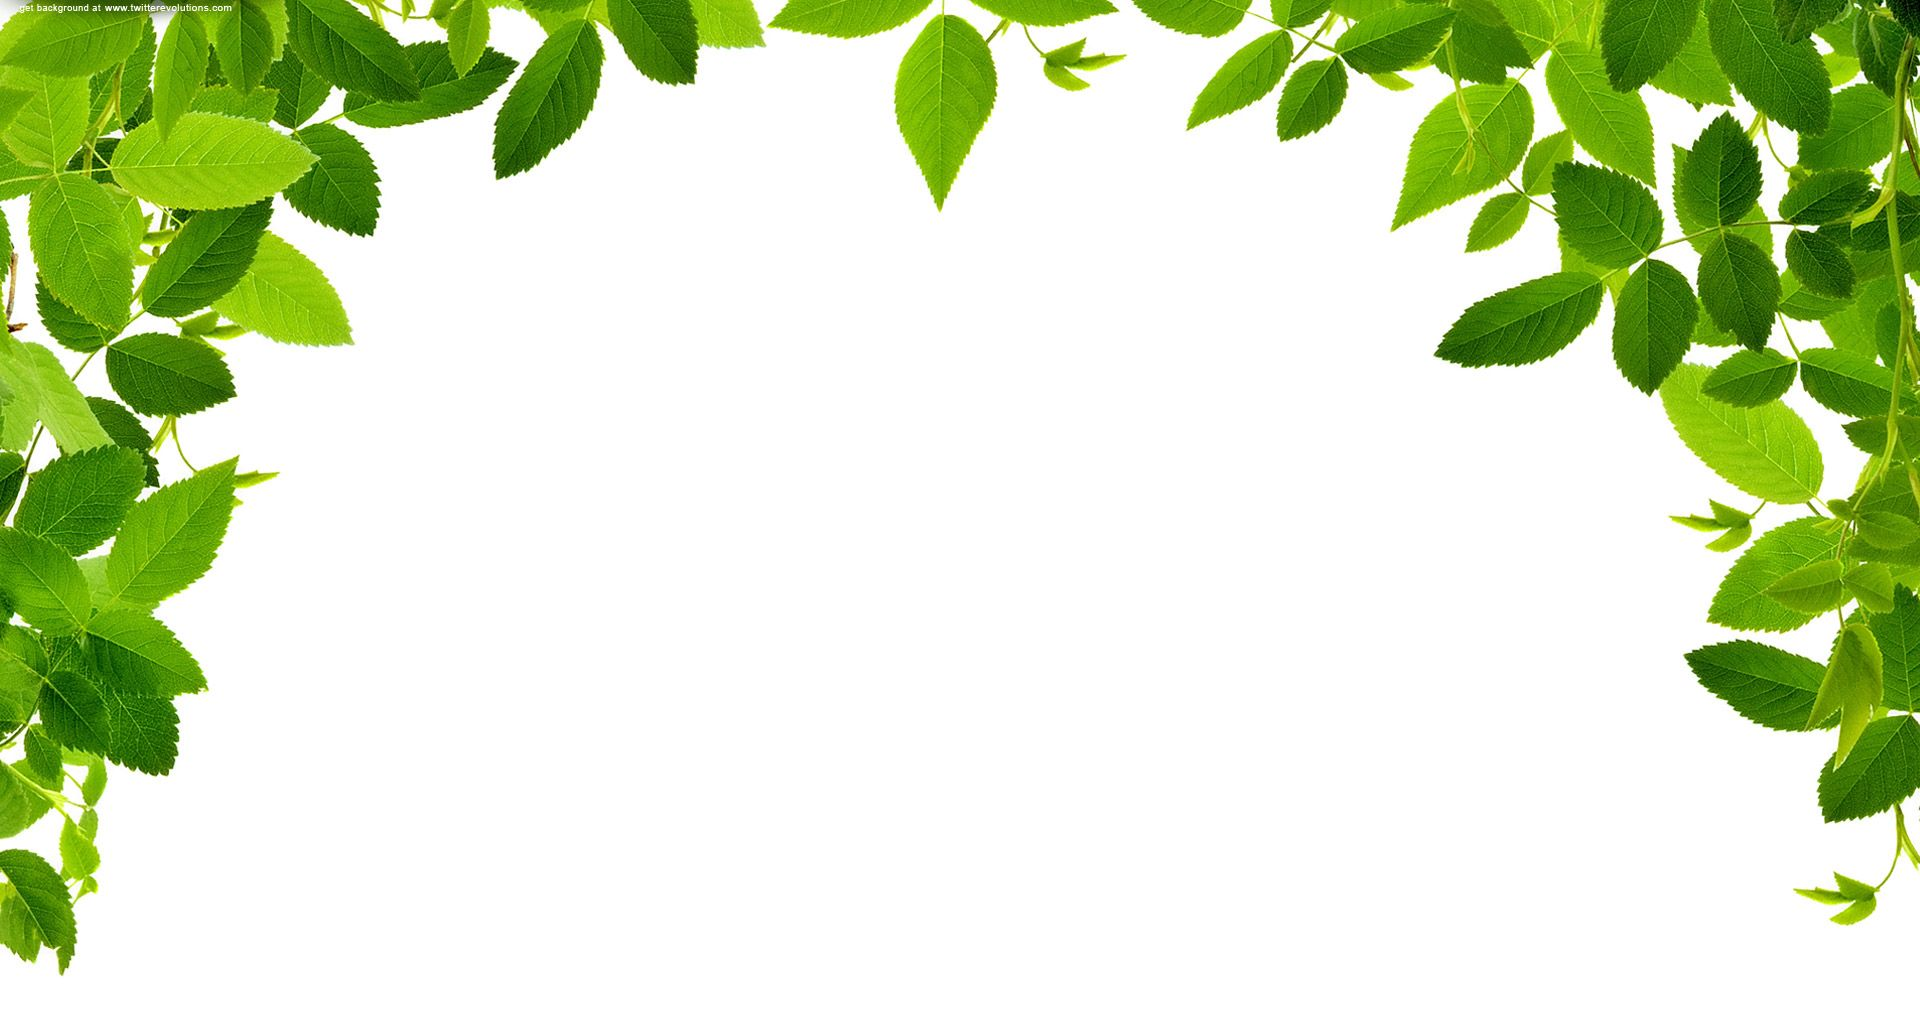 Leaves Real Free Images At Clker Com Vector Clip Art Online.